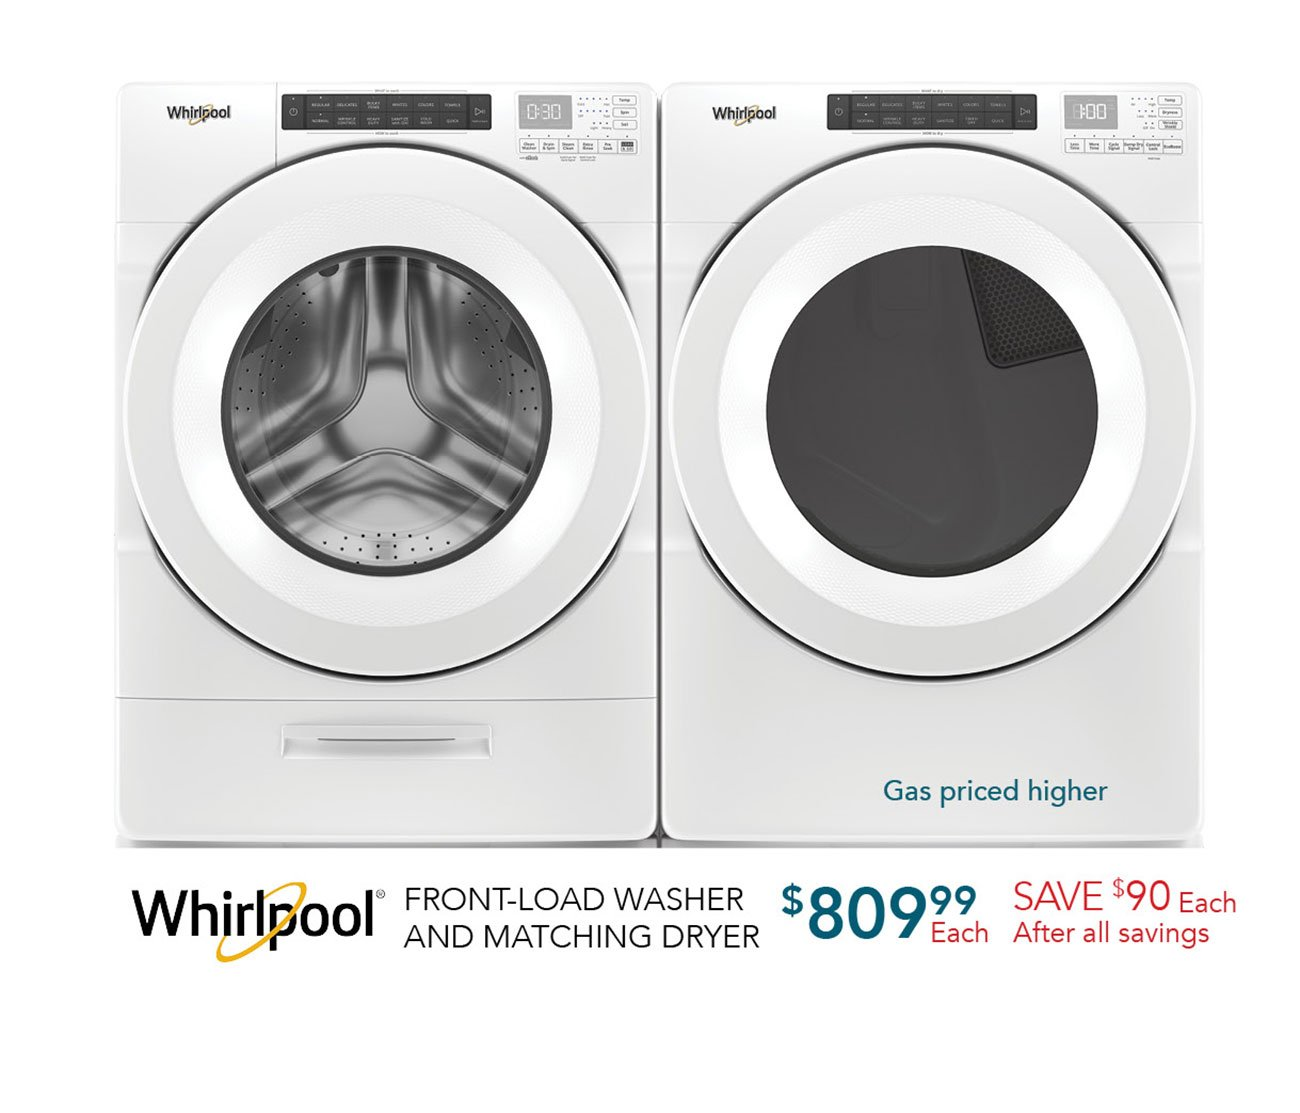 Whirlpool-front-load-washer-matching-dryer